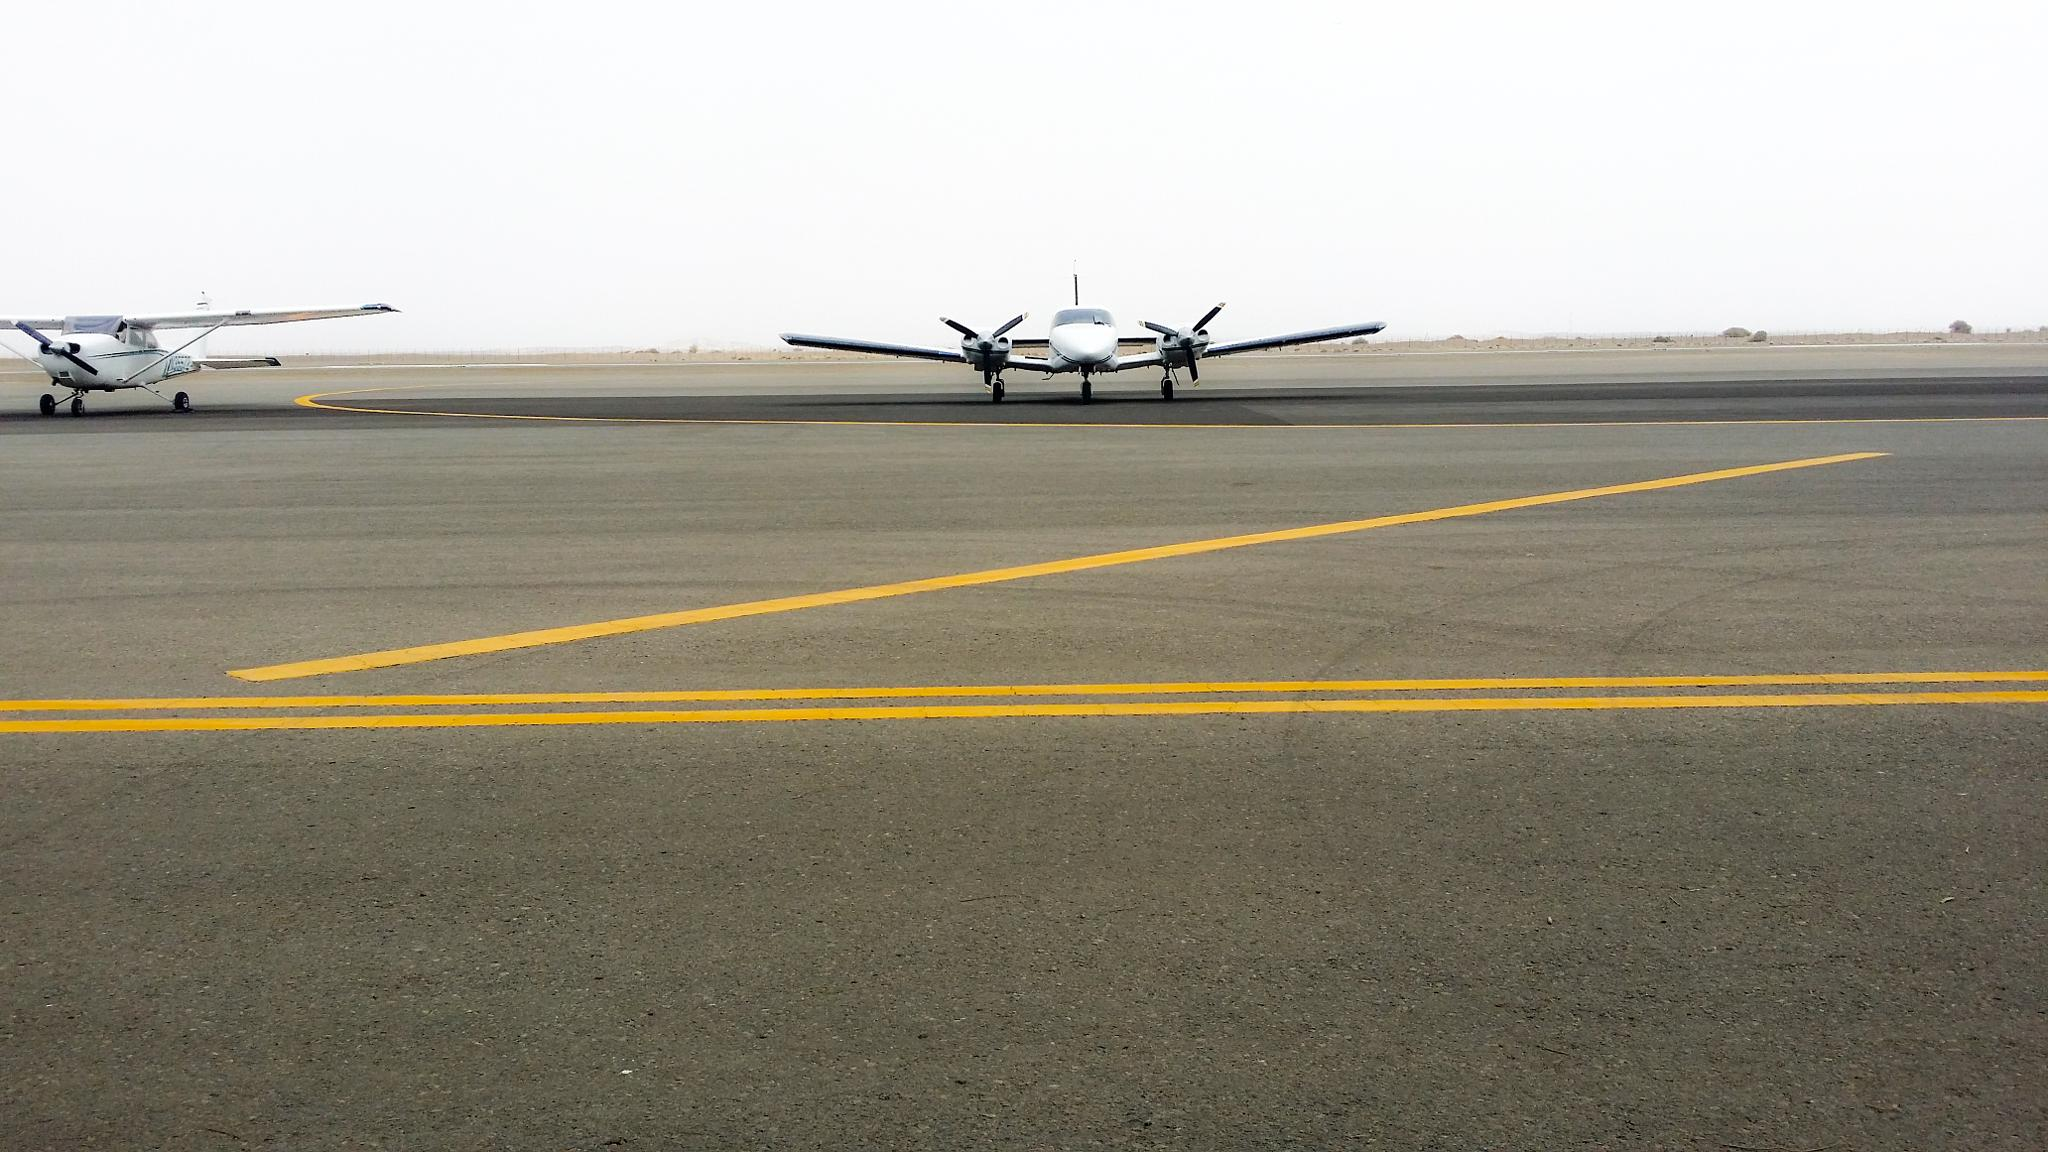 My Flight with Cessna by adnandemaz